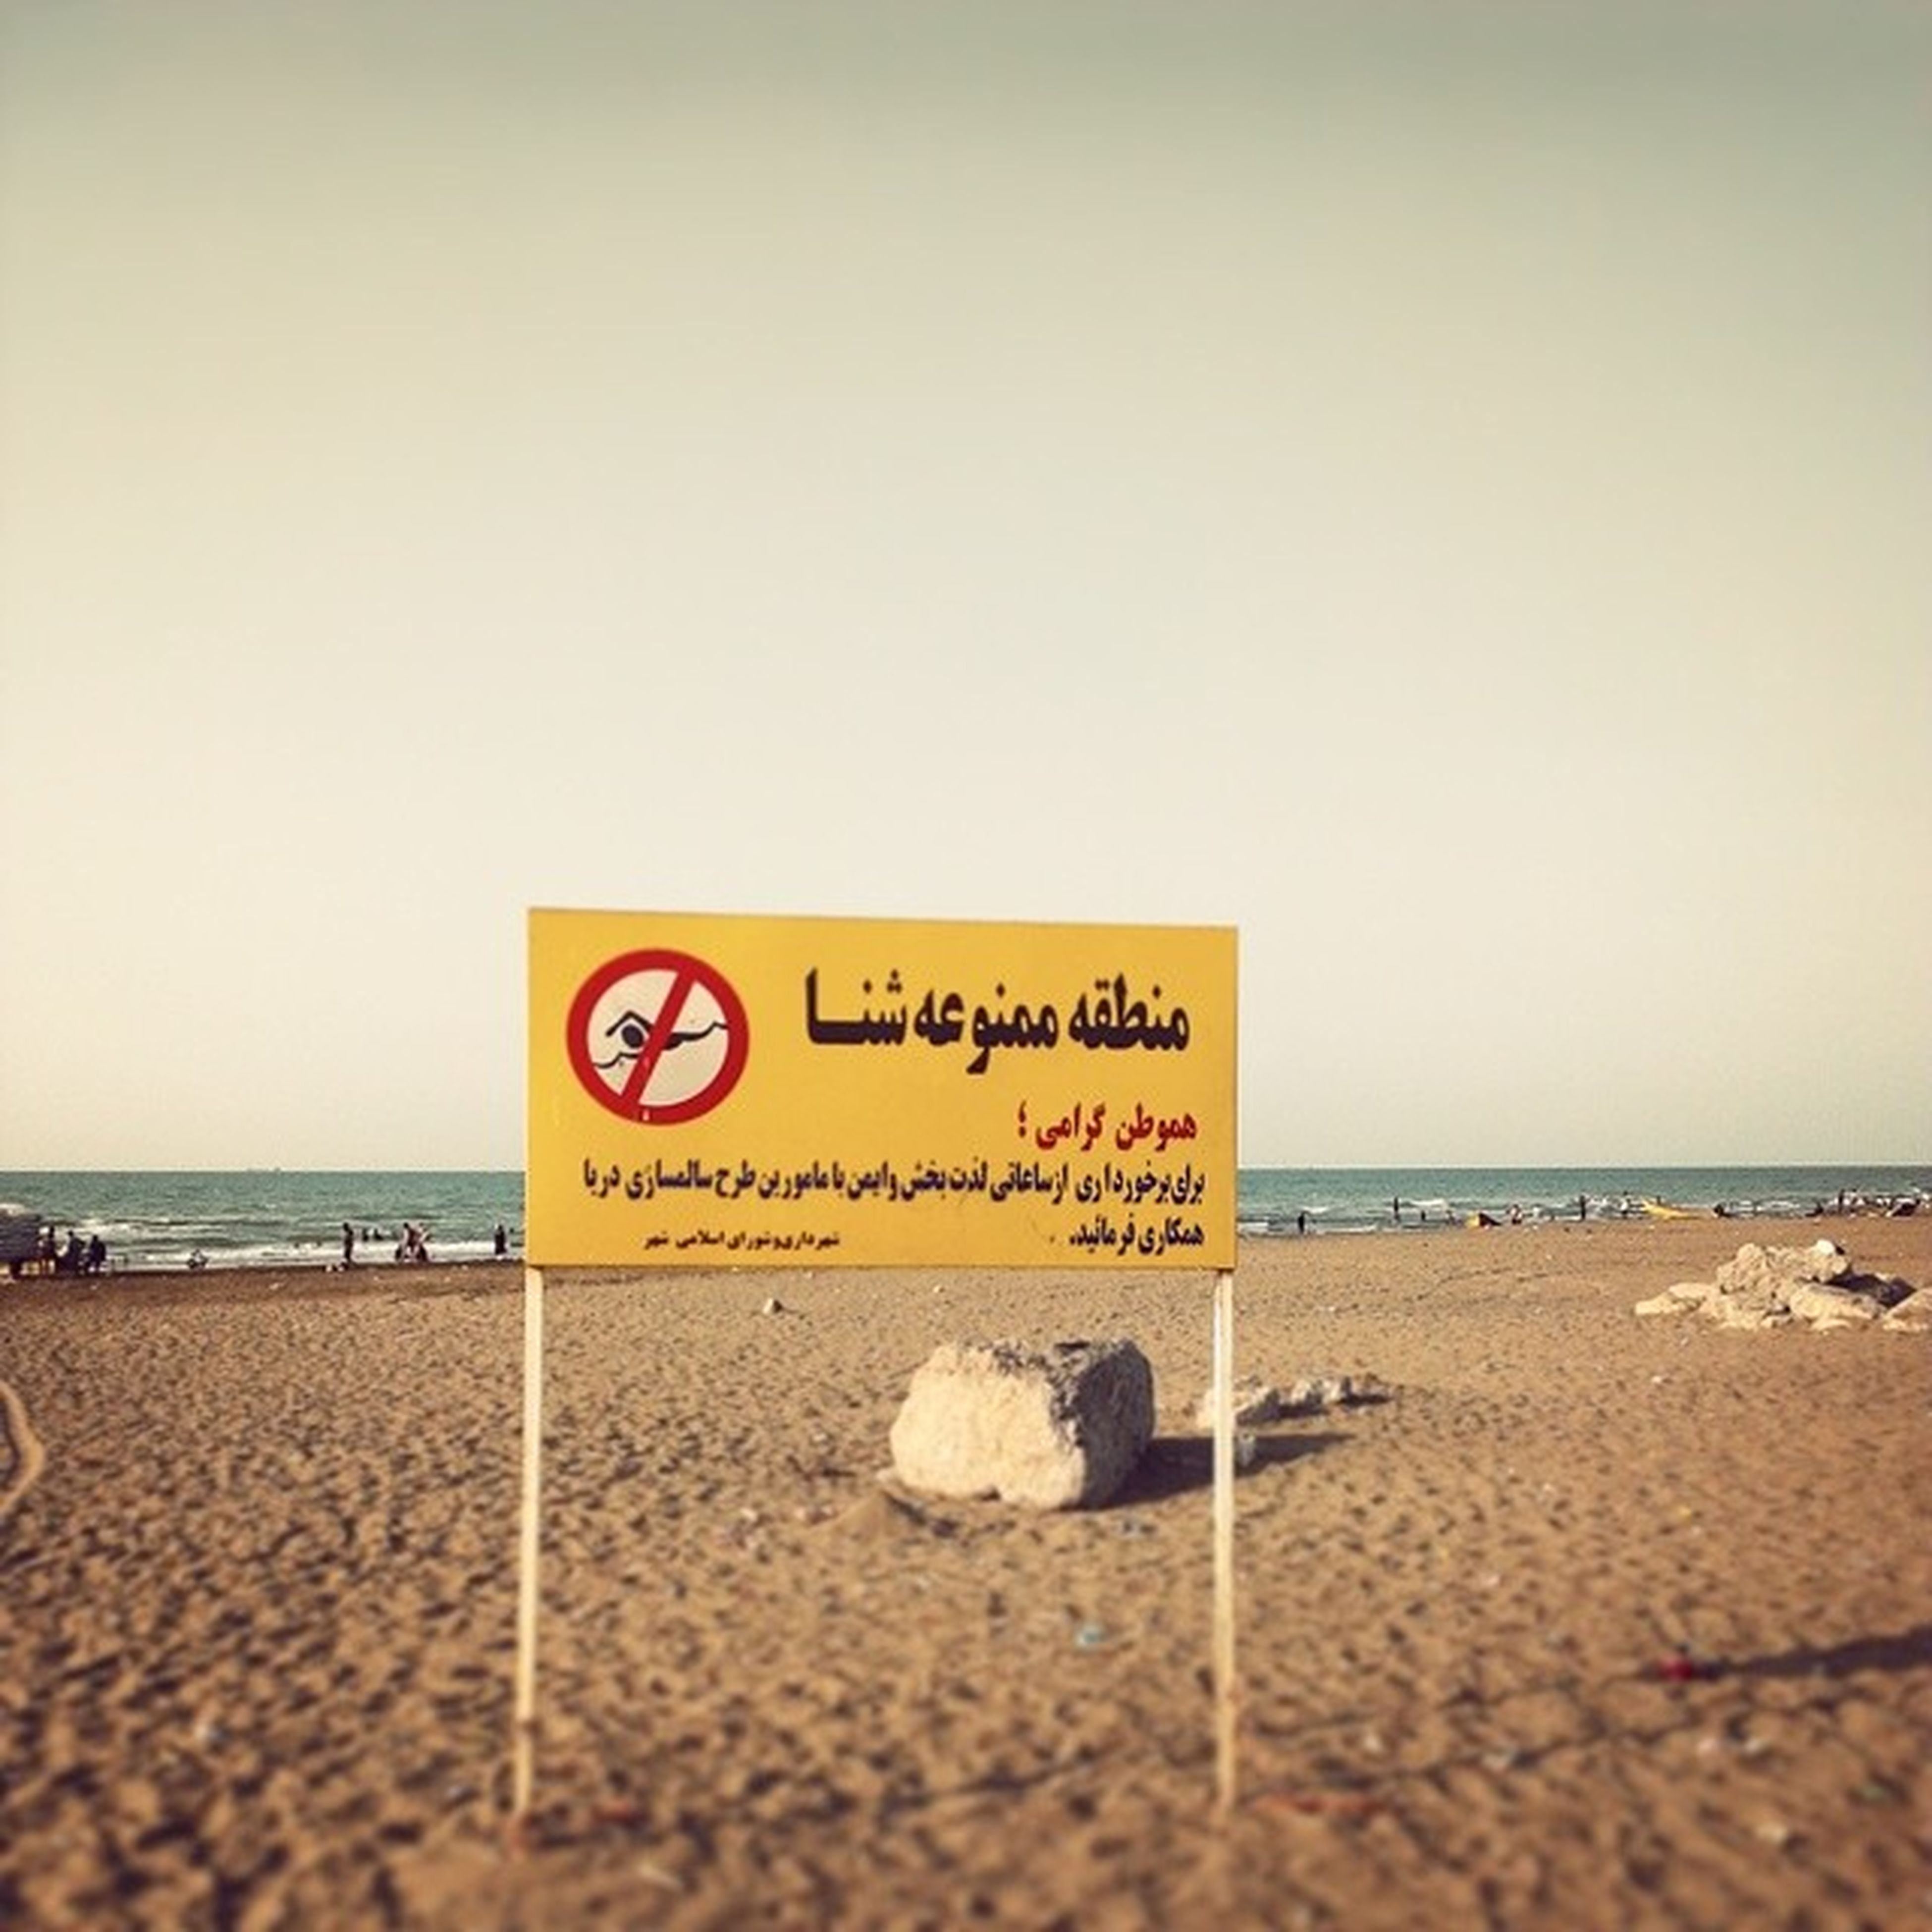 beach, sea, horizon over water, text, sand, western script, shore, water, clear sky, copy space, communication, tranquility, tranquil scene, sign, nature, scenics, guidance, beauty in nature, coastline, day